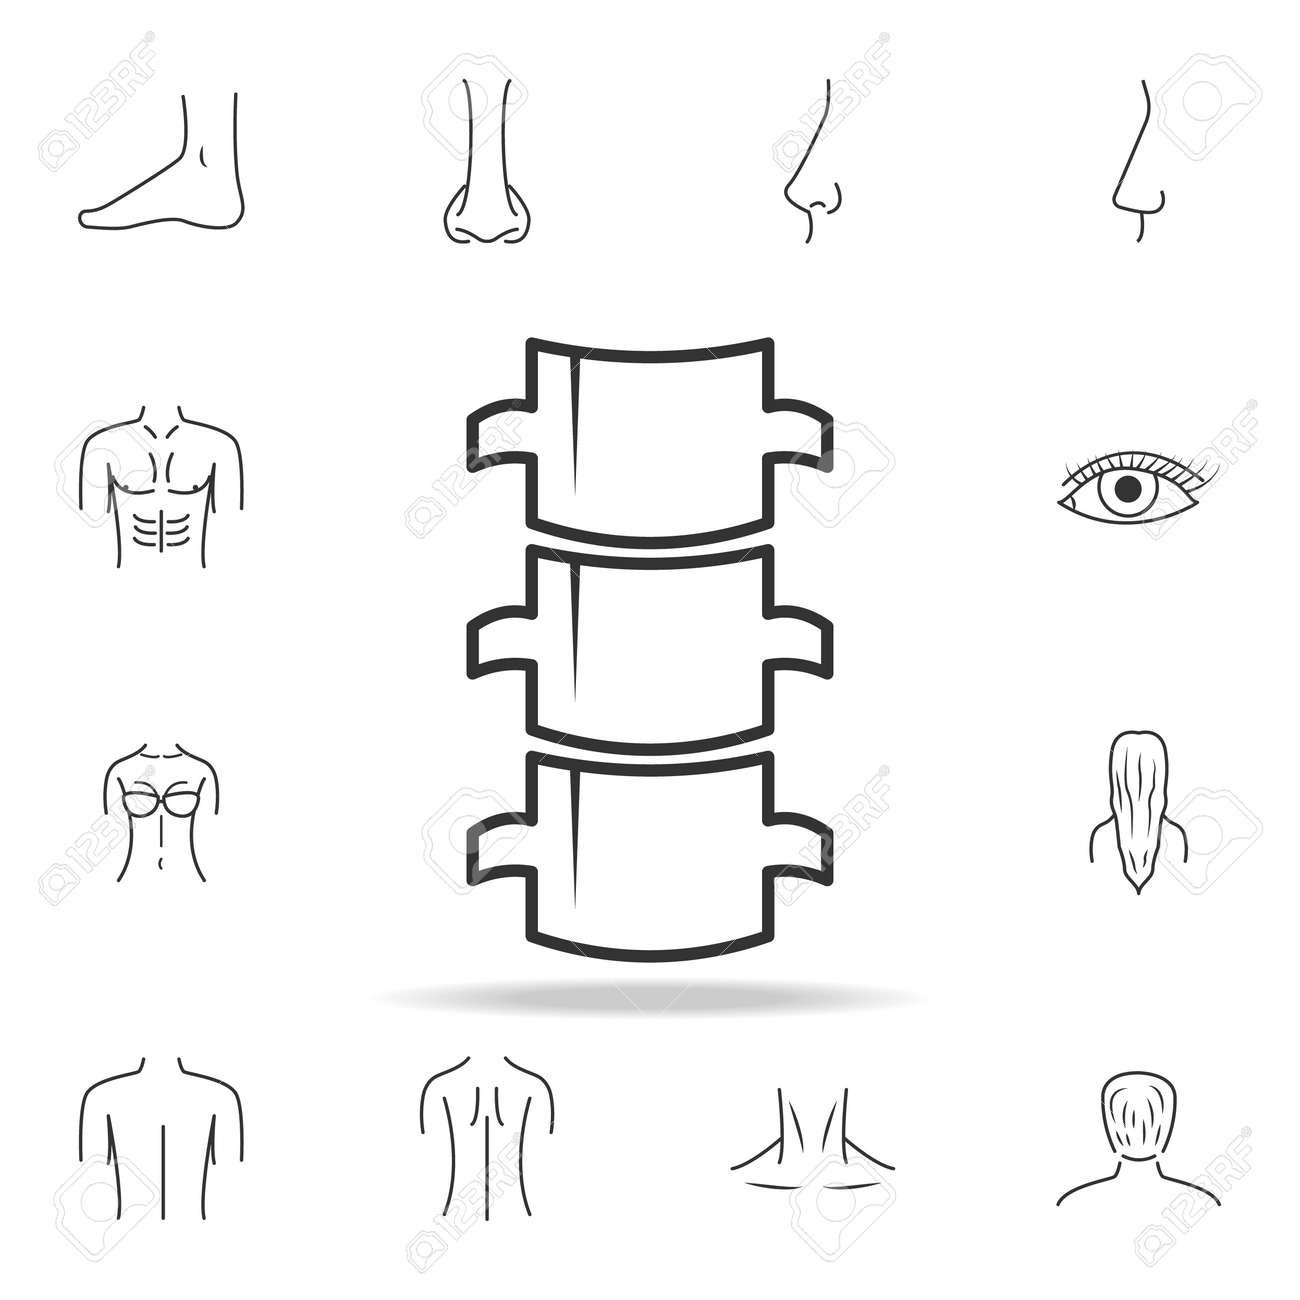 Spine Flat Icon Detailed Set Of Human Body Part Icons Premium